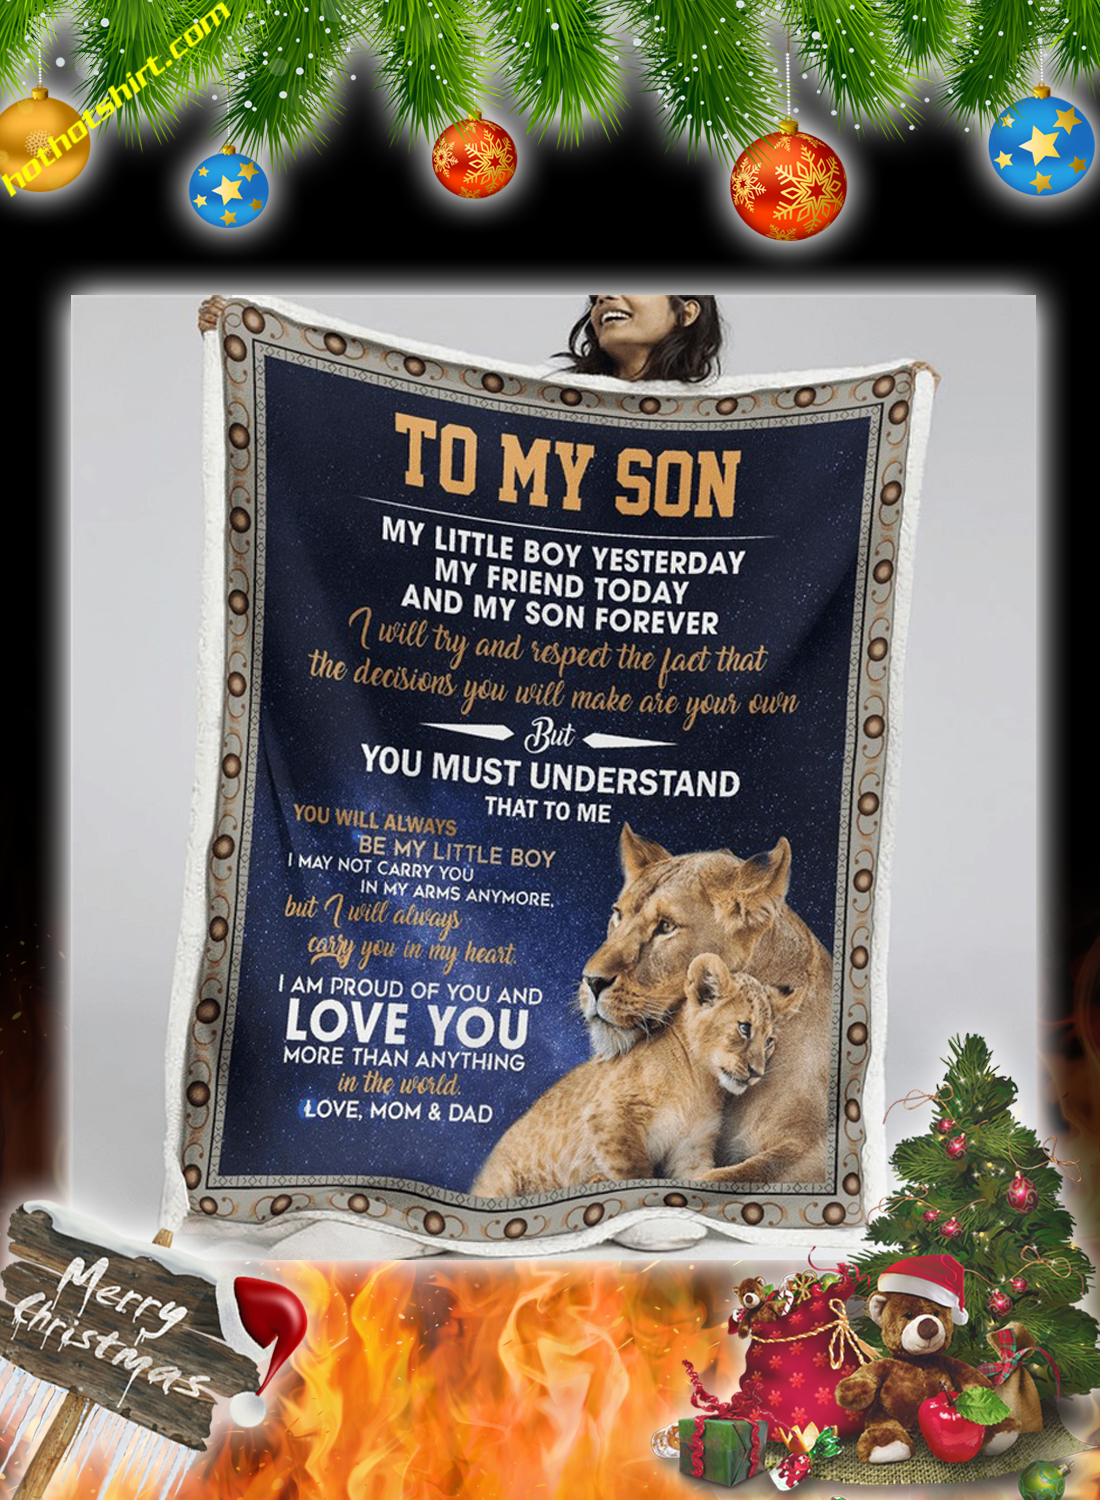 Lion To my son love mom and dad quilt 1